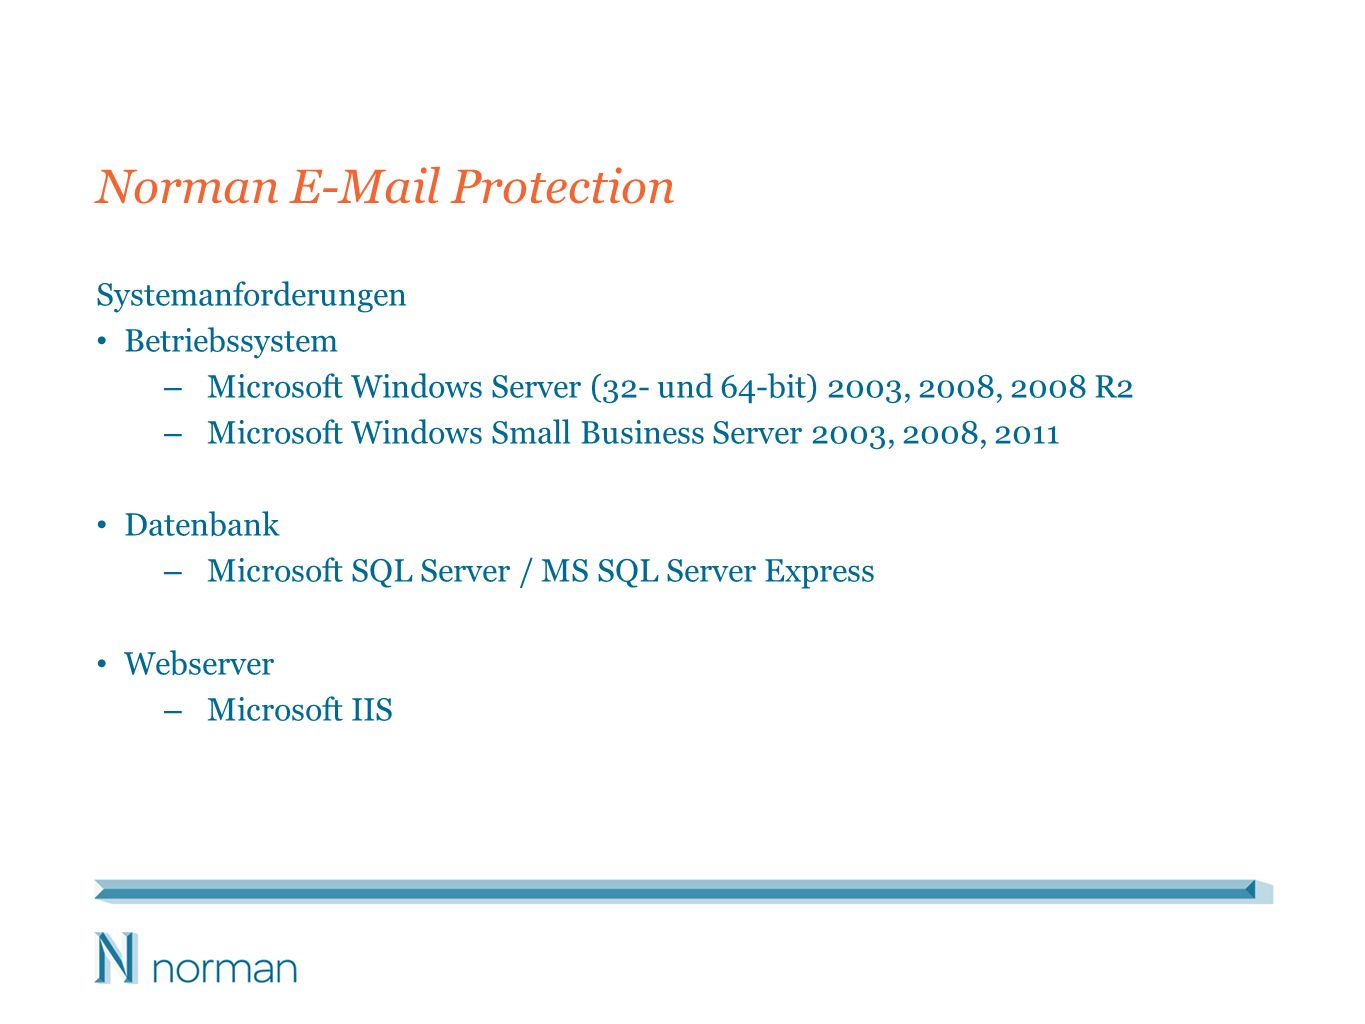 Norman E-Mail Protection Systemanforderungen Betriebssystem – Microsoft Windows Server (32- und 64-bit) 2003, 2008, 2008 R2 – Microsoft Windows Small